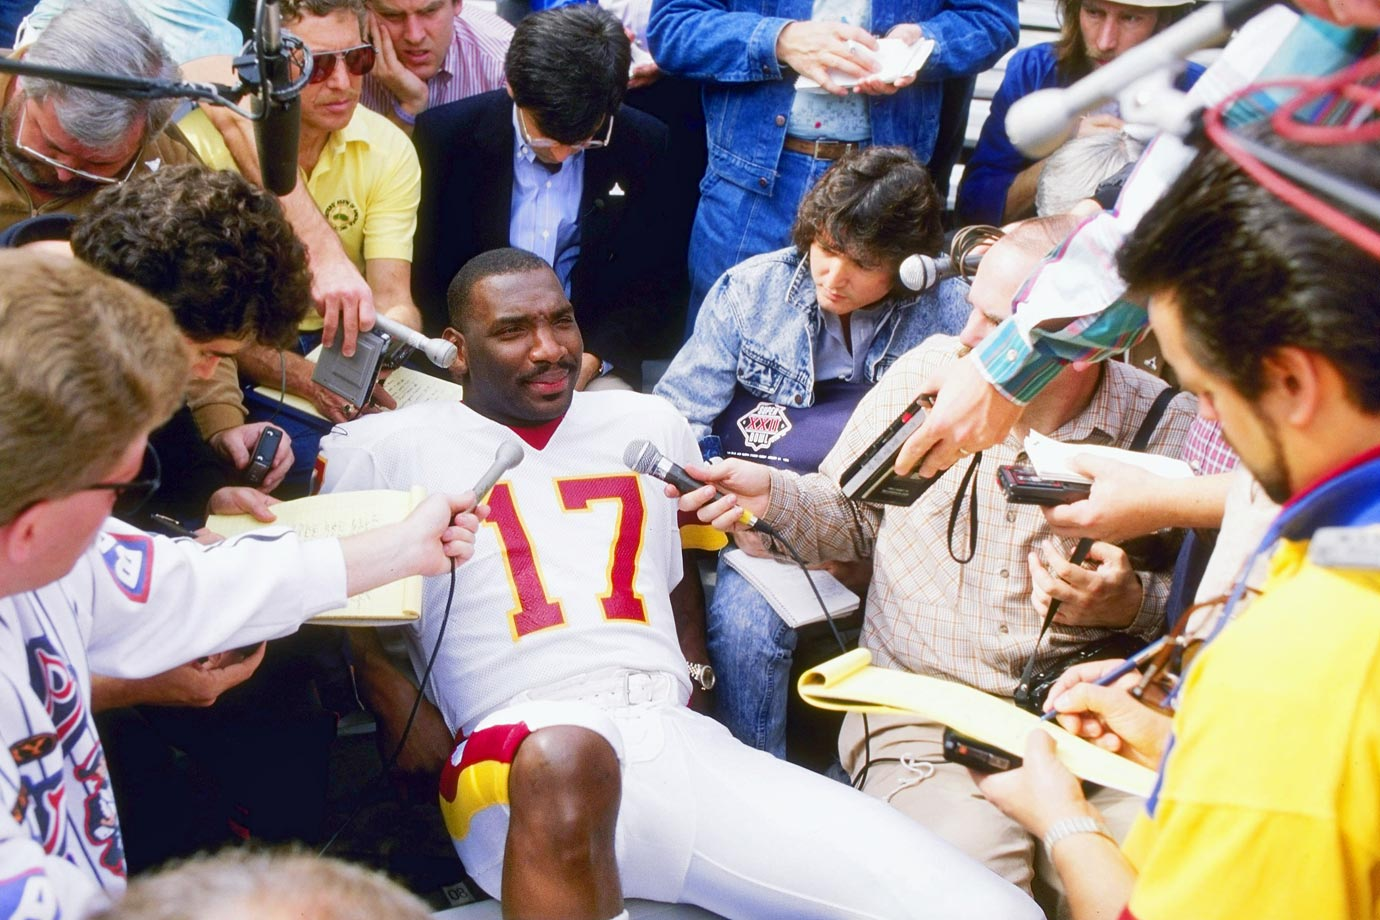 A relaxed Doug Williams fields questions during Media Day for Super Bowl XXII in San Diego. The quarterback led the Redskins to a 42-10 victory over Denver.